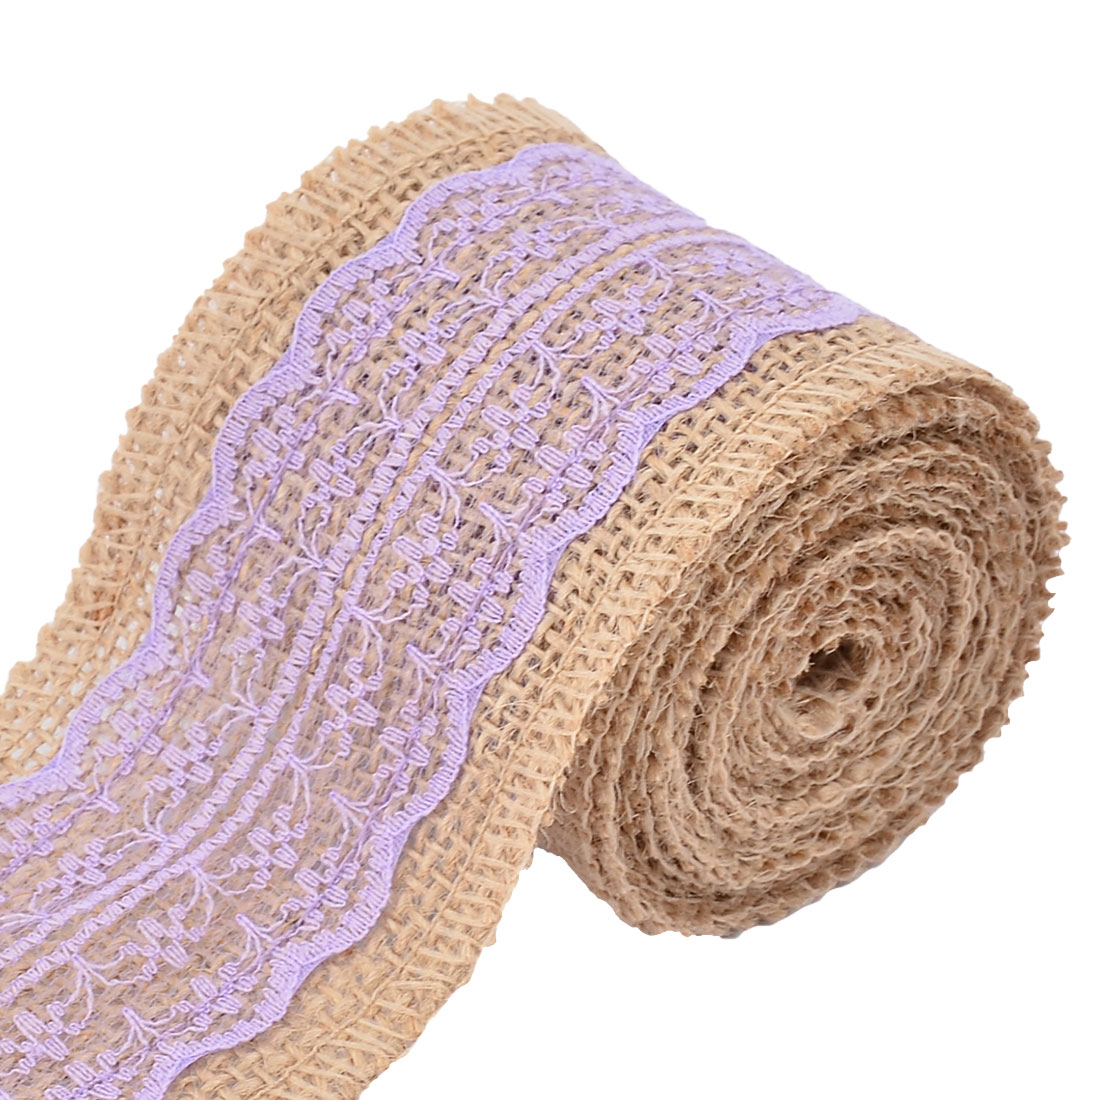 Home Lace Edge Ornament Craft Burlap Ribbon Strap Roll Light Purple 2.2 Yards